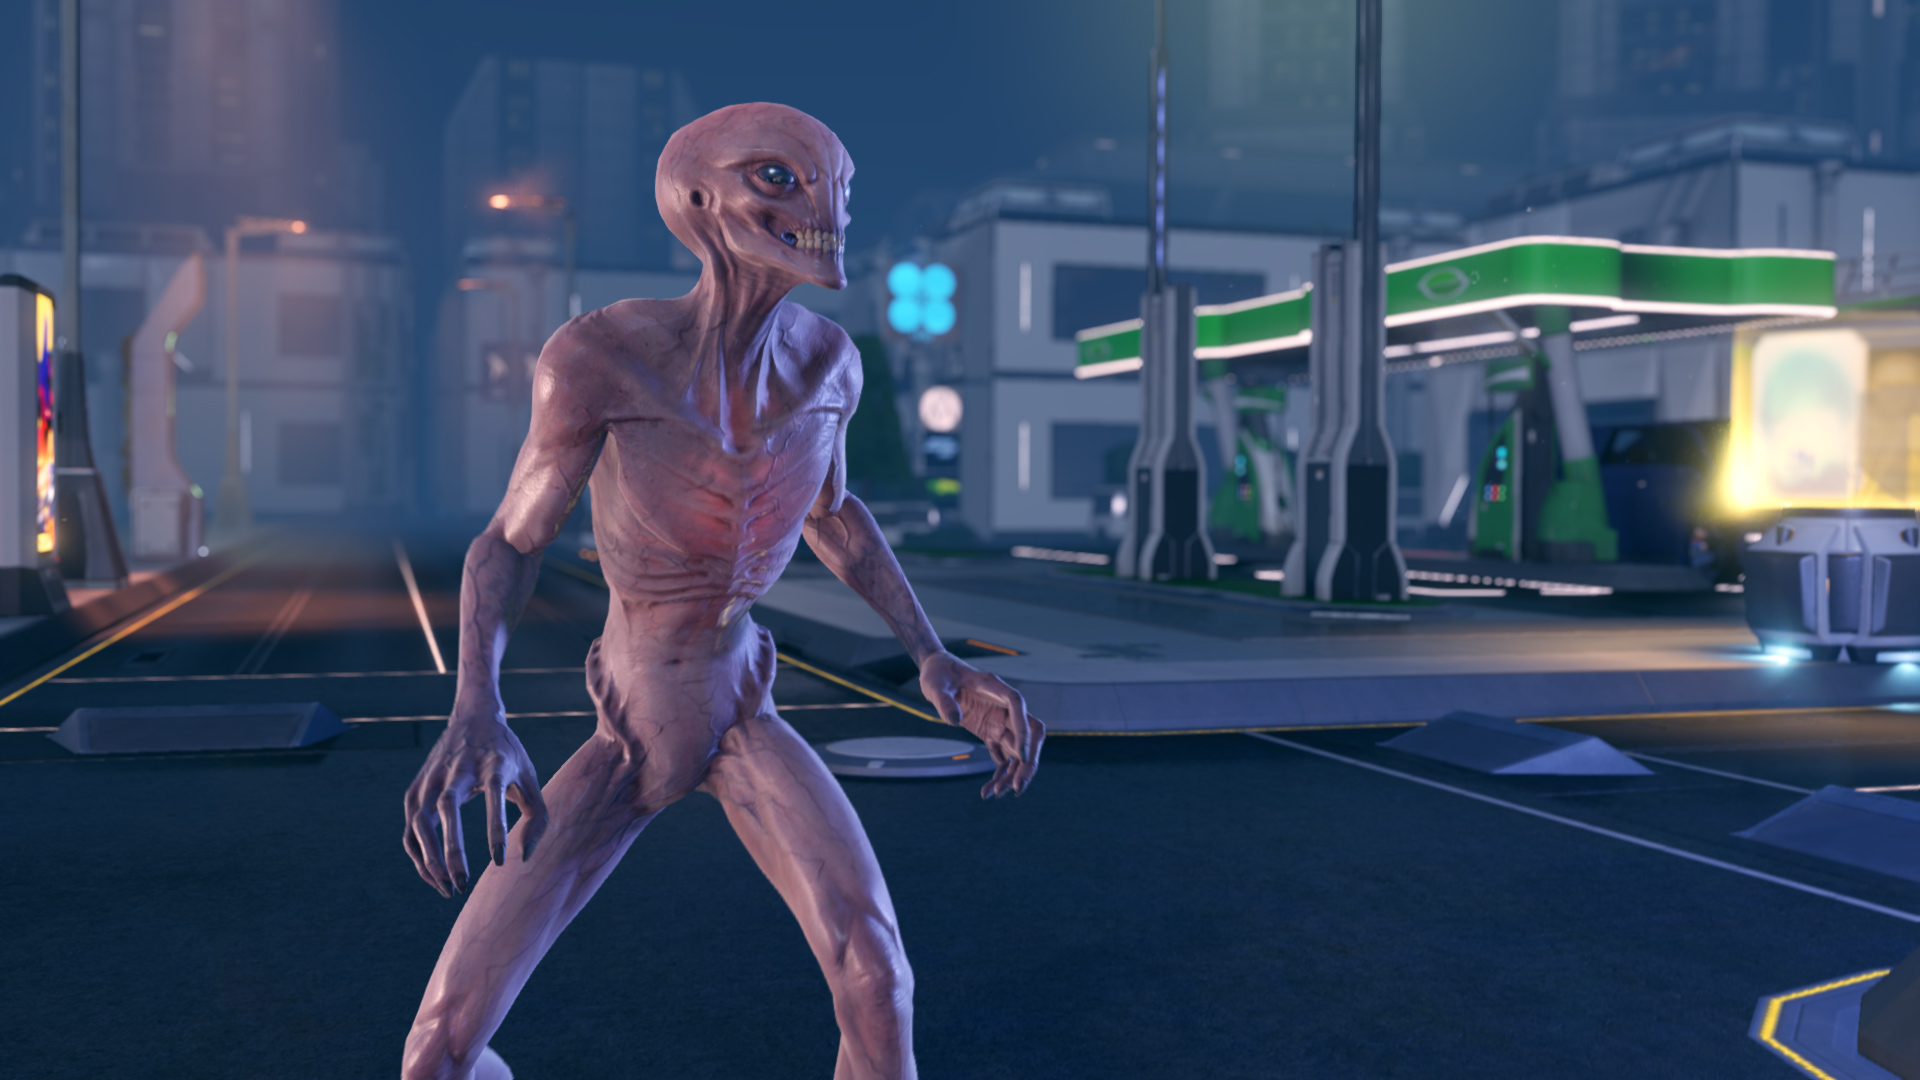 XCOM 2 may not look that different, but it's one we should have all tried.